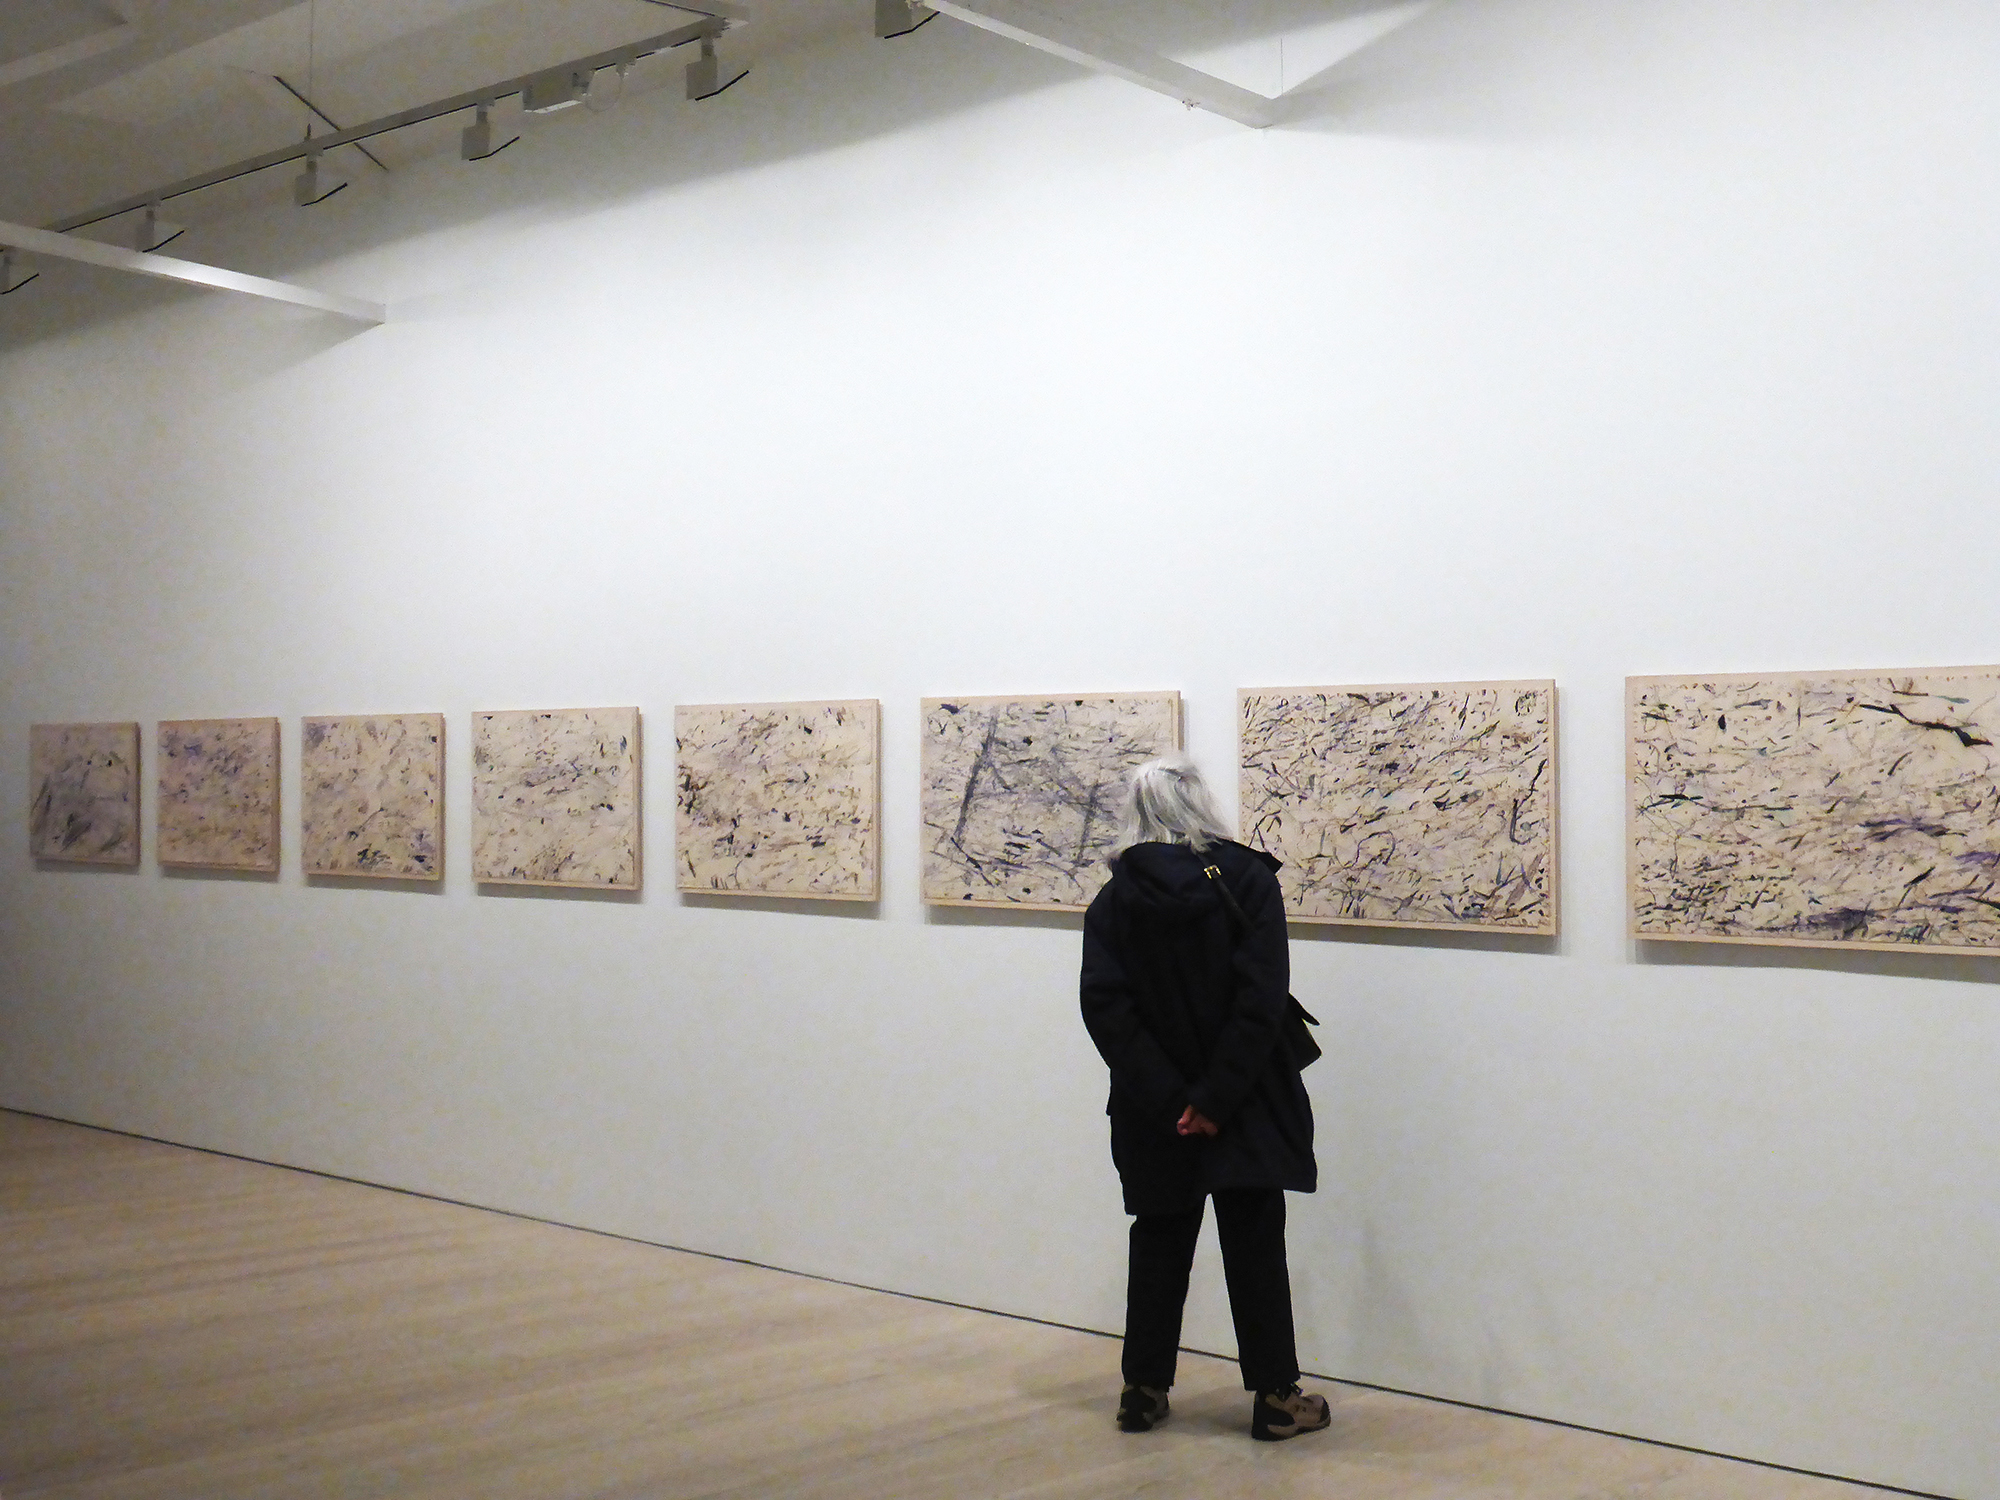 Saatchi Gallery Installation view 10.jpg